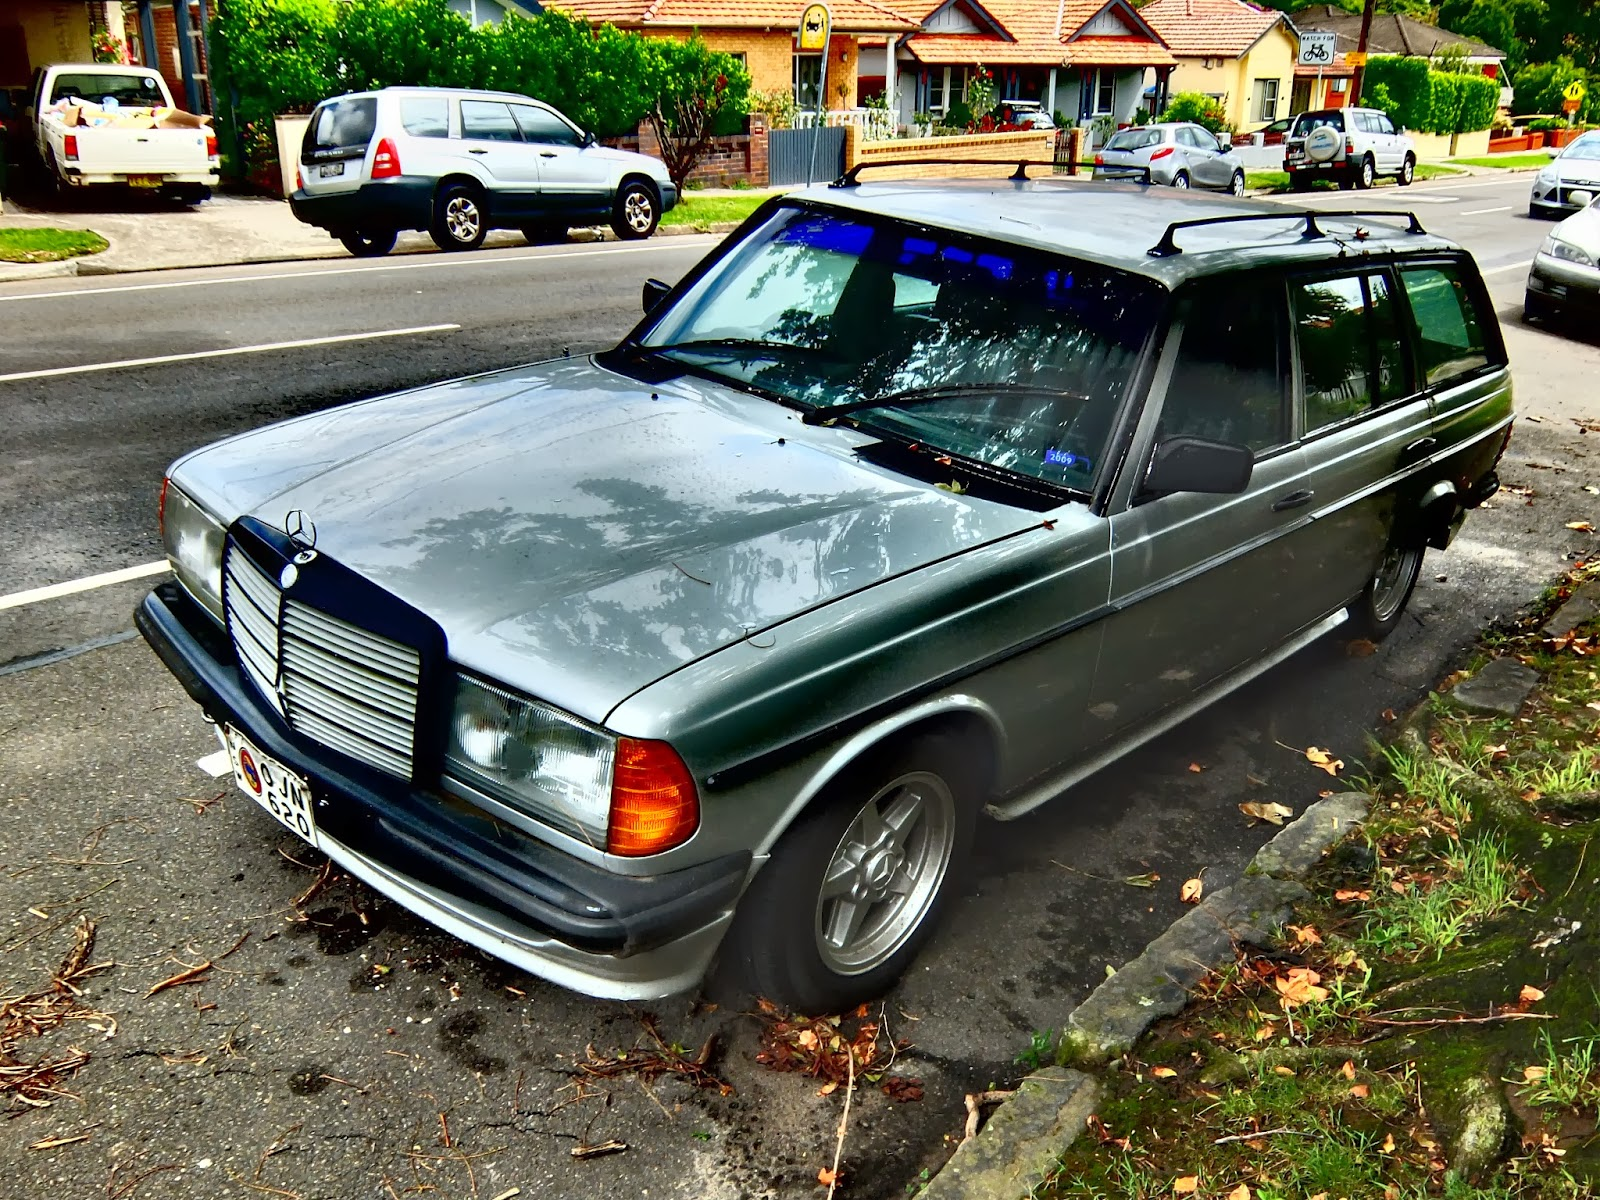 Aussie Old Parked Cars: 1983 Mercedes-Benz W123 280 TE AMG Wagon